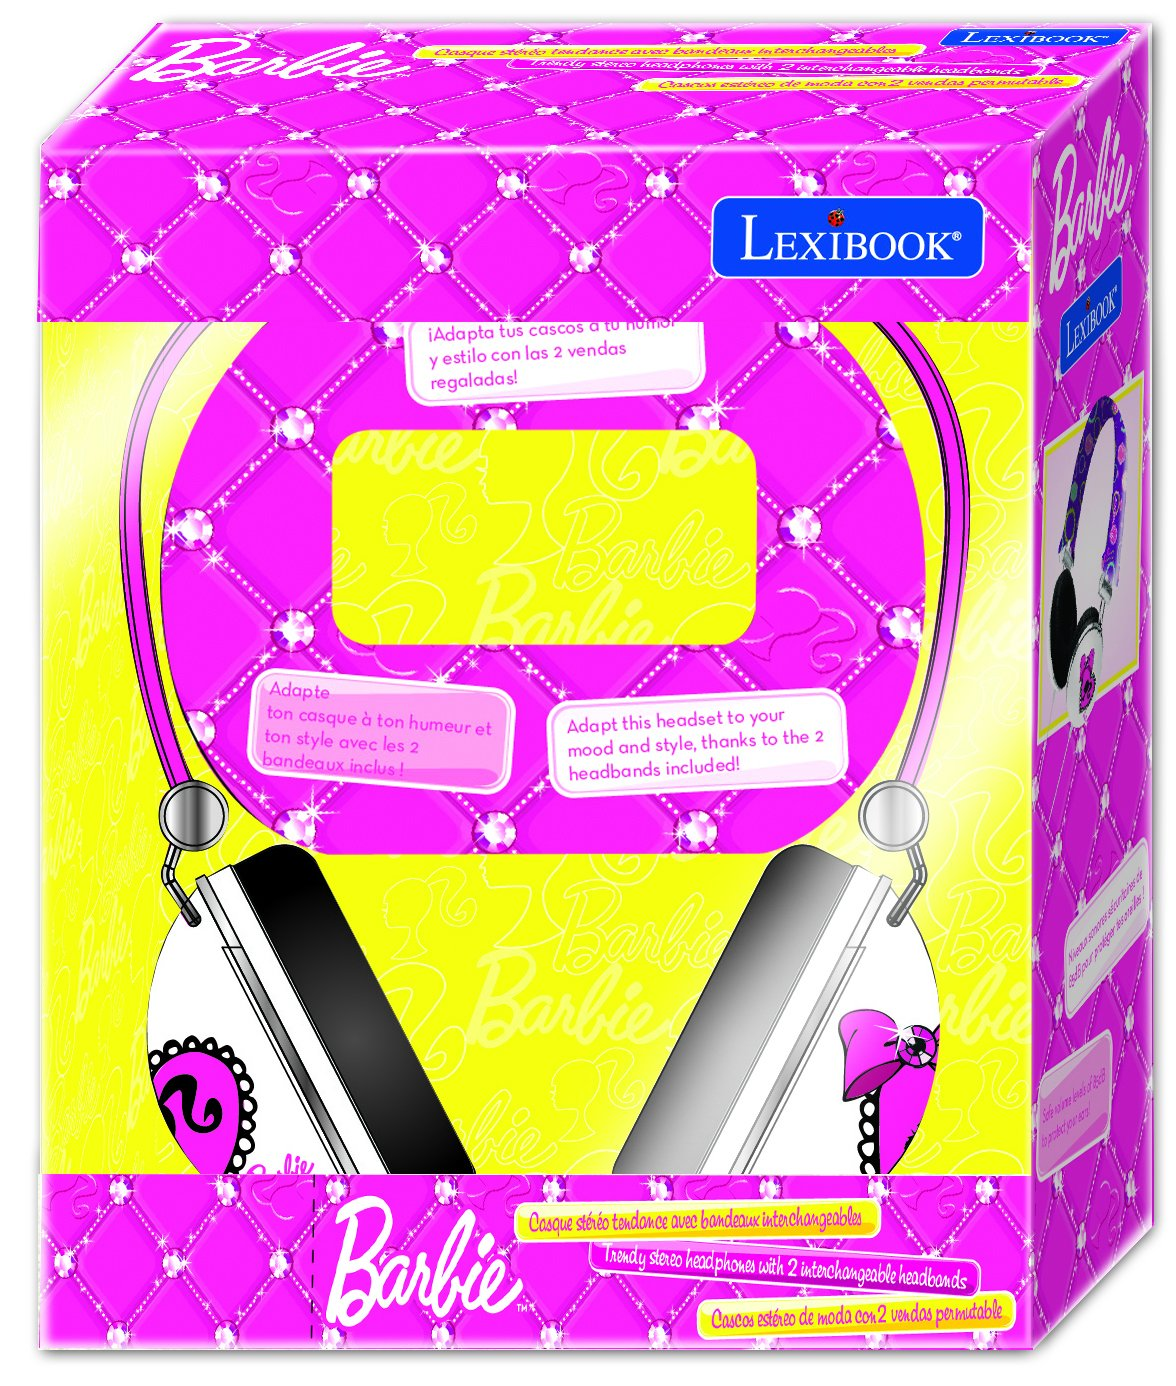 Amazon.com: Lexibook Barbie Stereo Headphones with 2 x Trendy Interchangeable Headbands: Electronics